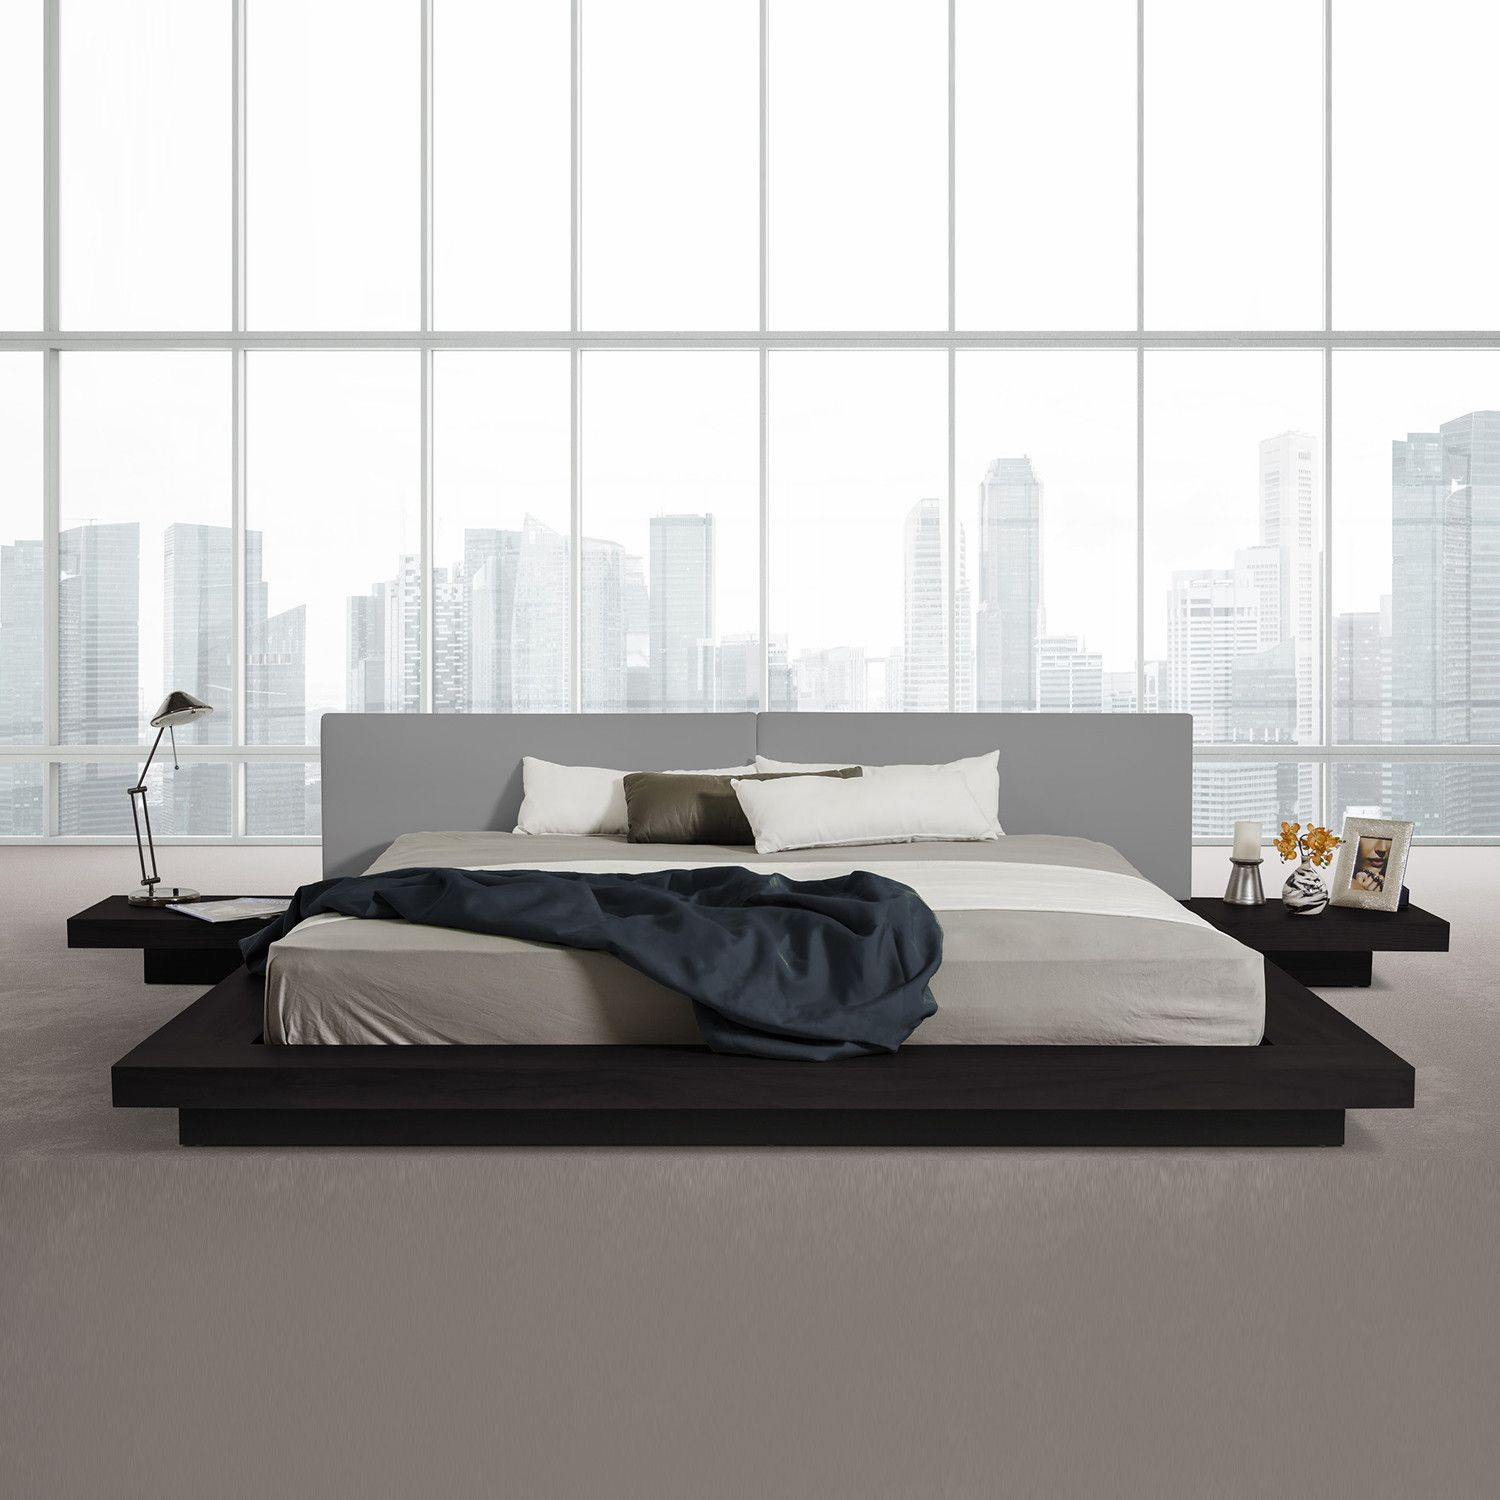 wen x tokyo japanese wht bed platform asian nightstands beds